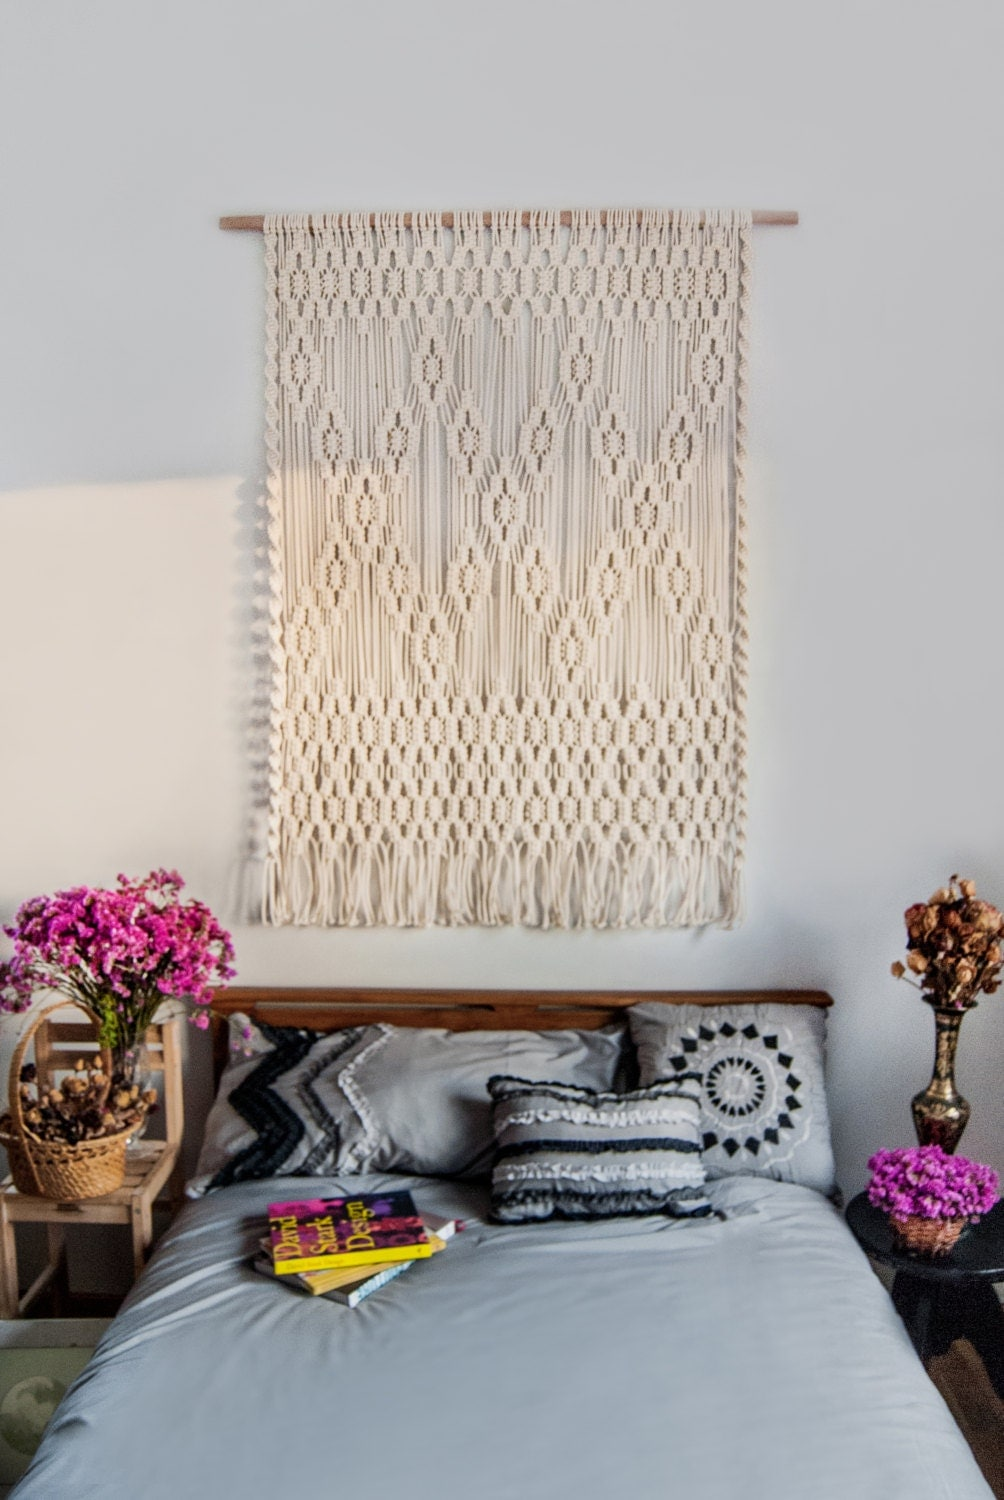 large macrame wall hanging bedroom nursery decor boho macrame wall hanging macrame curtain large macrame wall